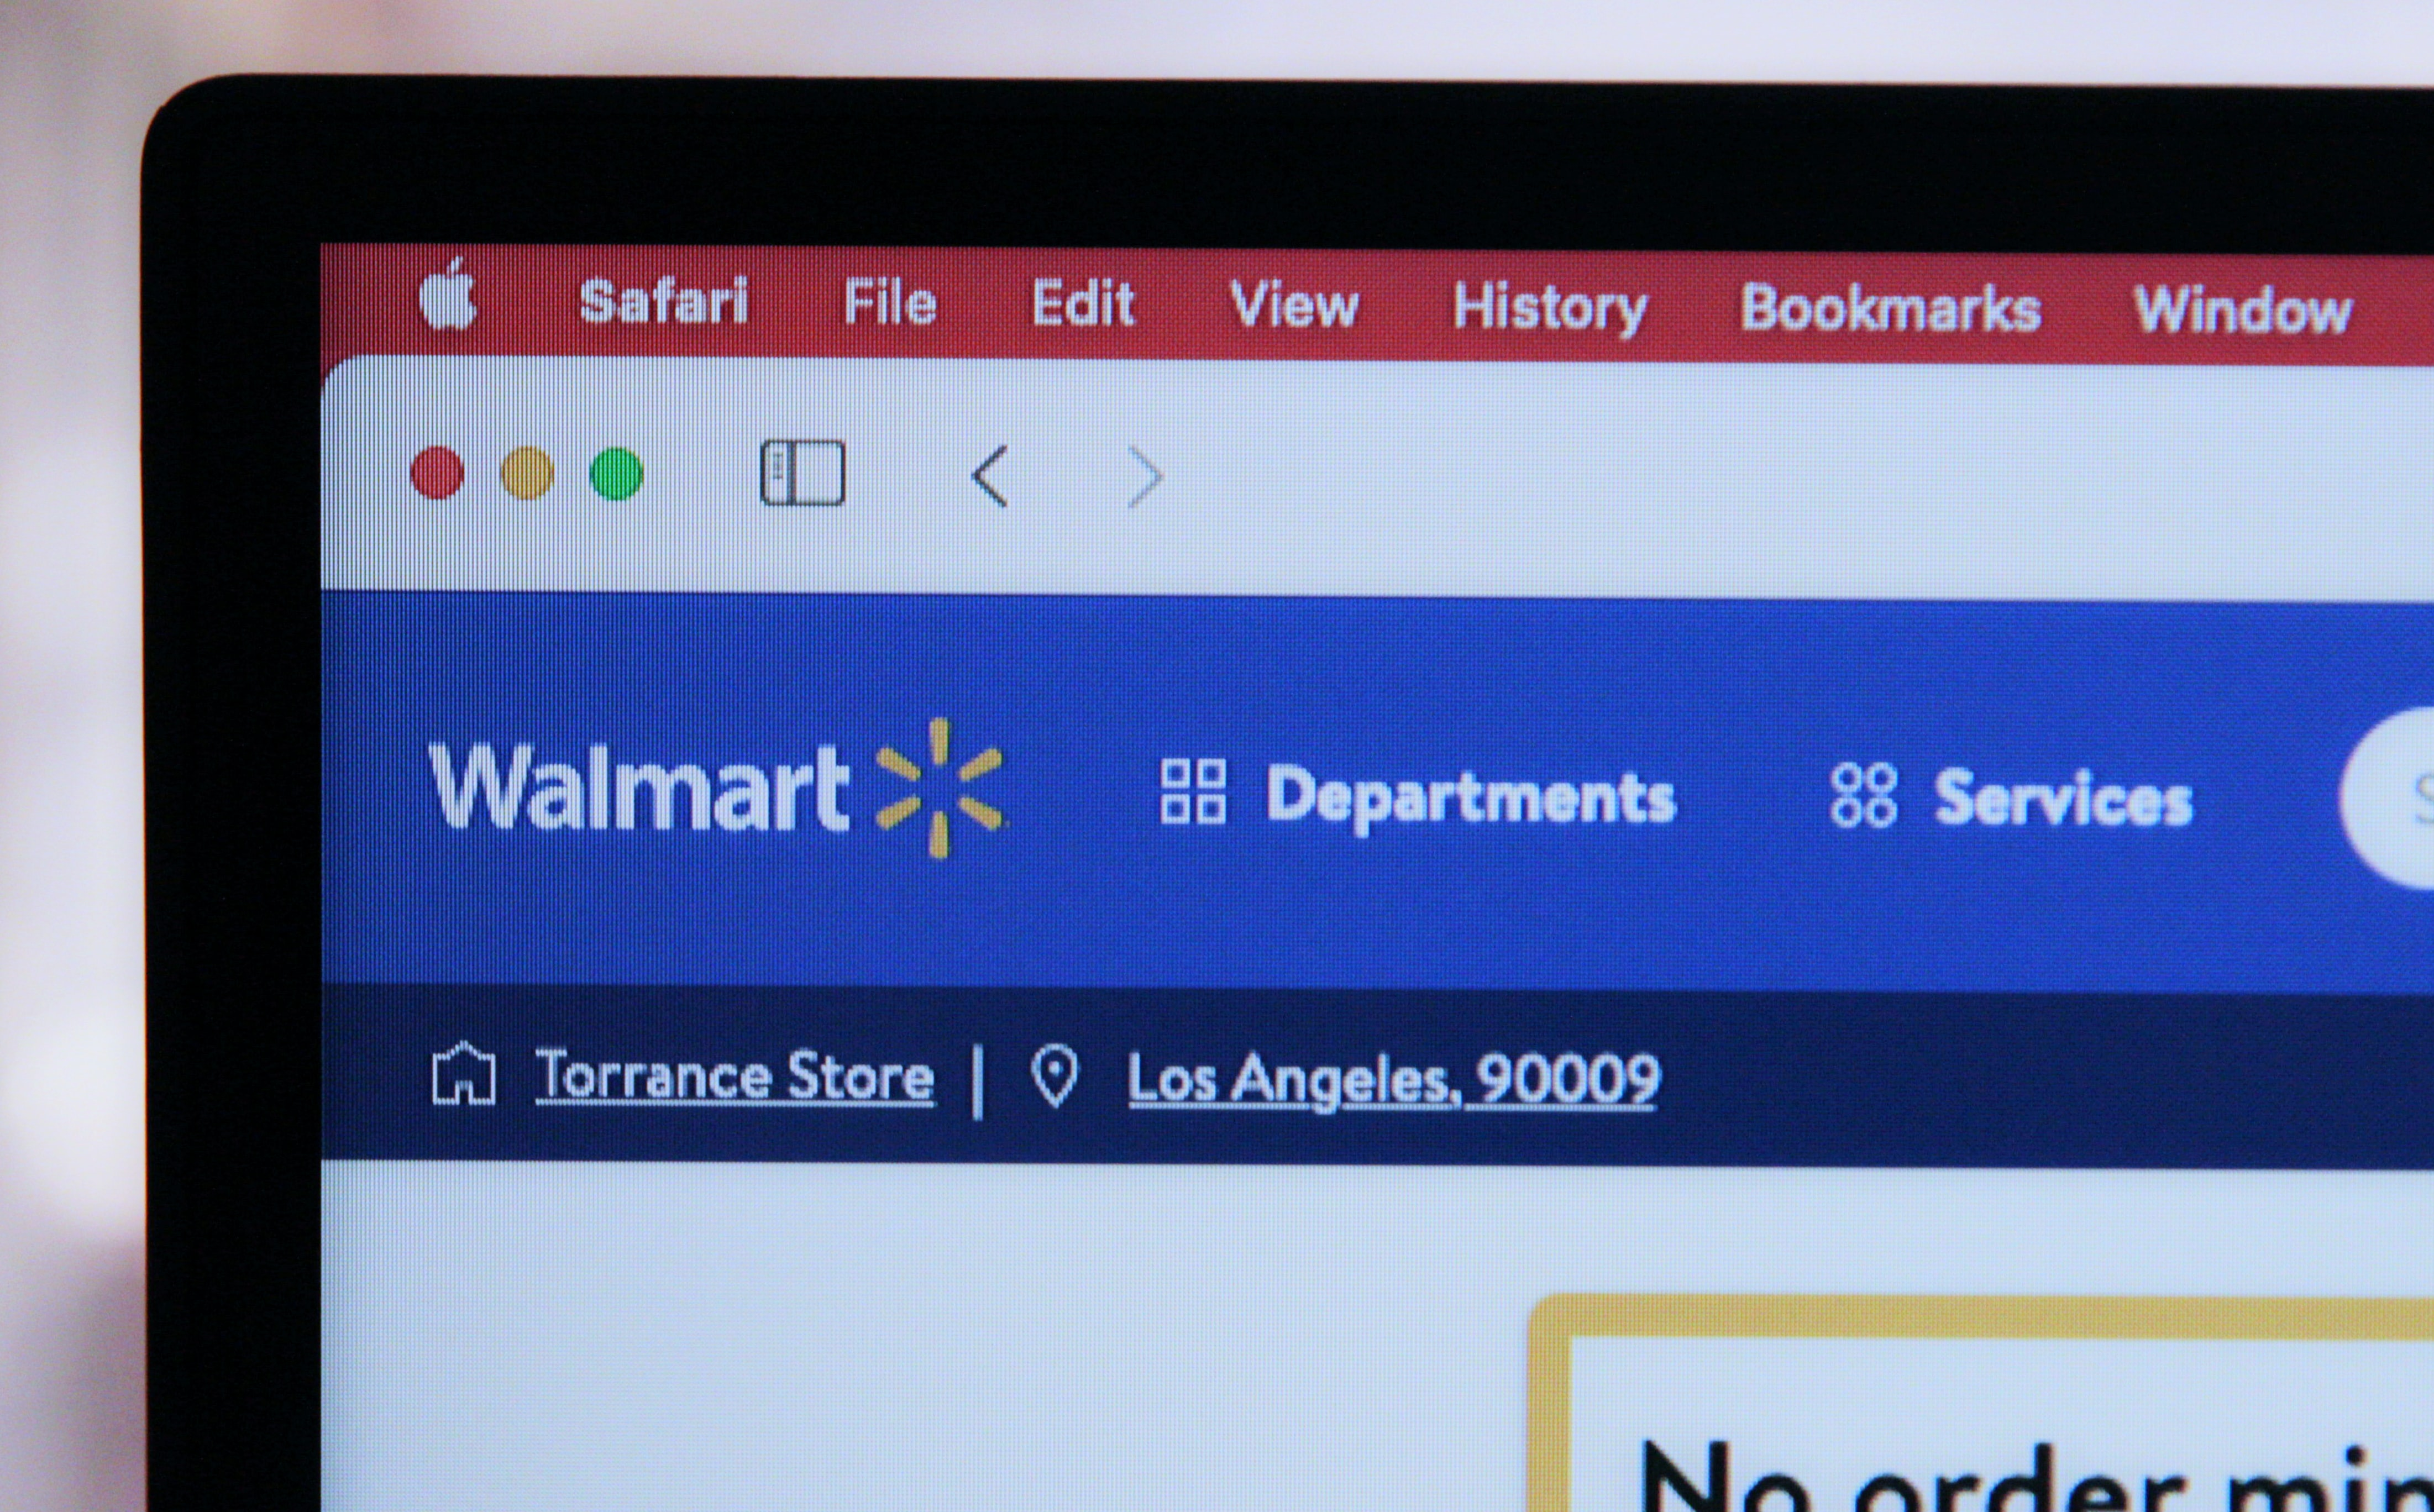 Walmart announced a driverless delivery service.